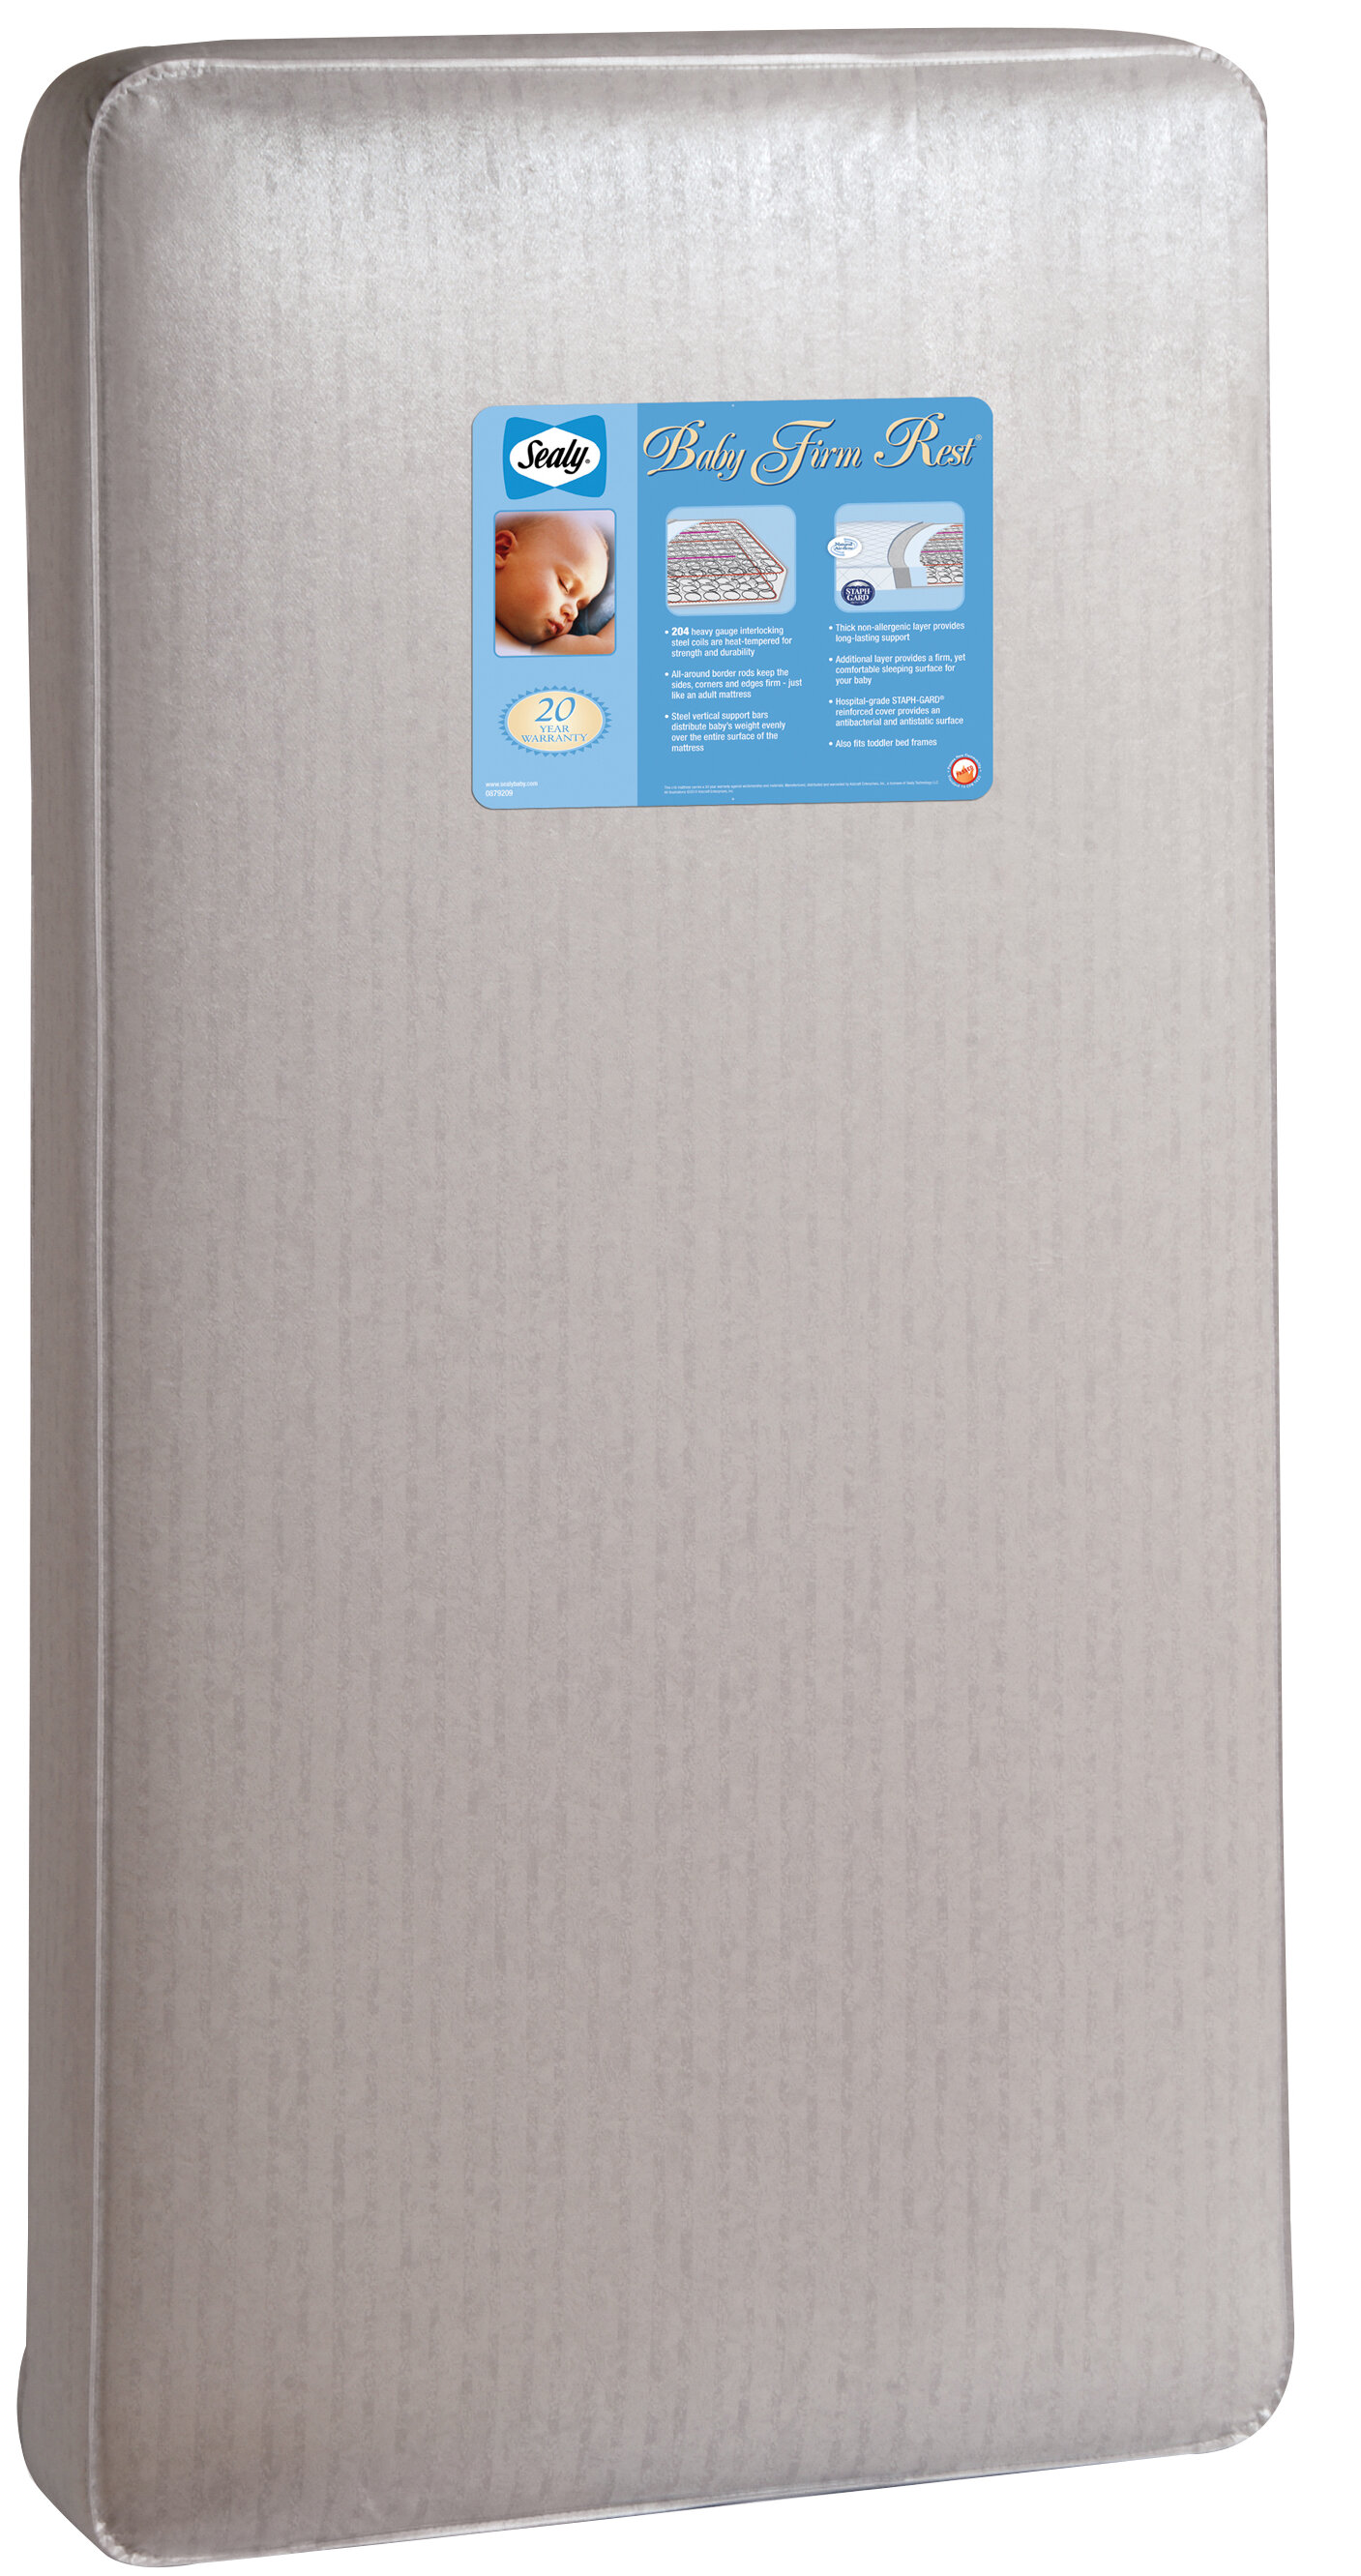 "sealy baby firm rest 5.5"" crib mattress & reviews 